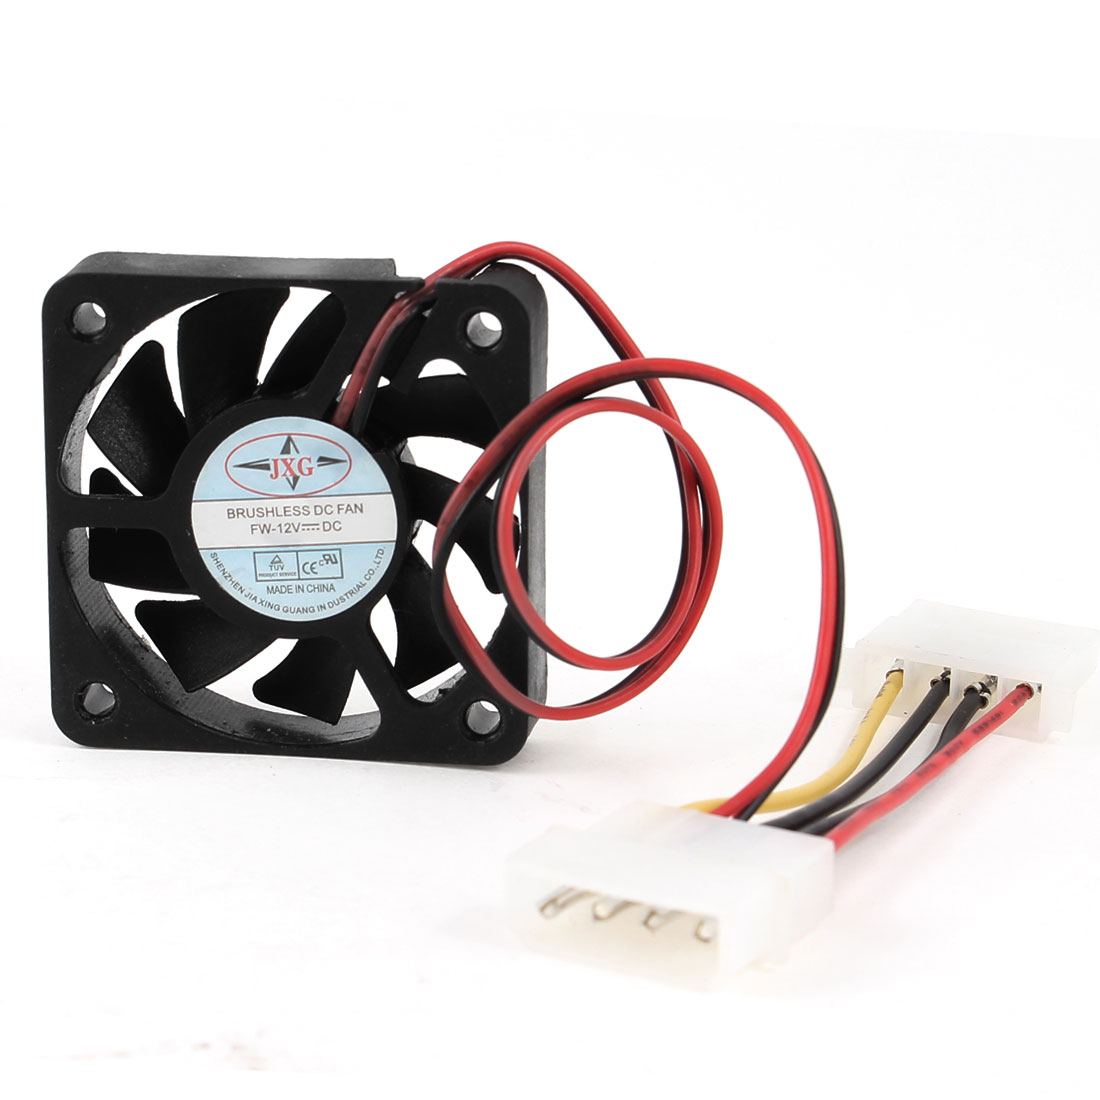 DC 12V 4 Pin Connector Mini Computer Case CPU Cooling Fan 50mmx50mmx10mm